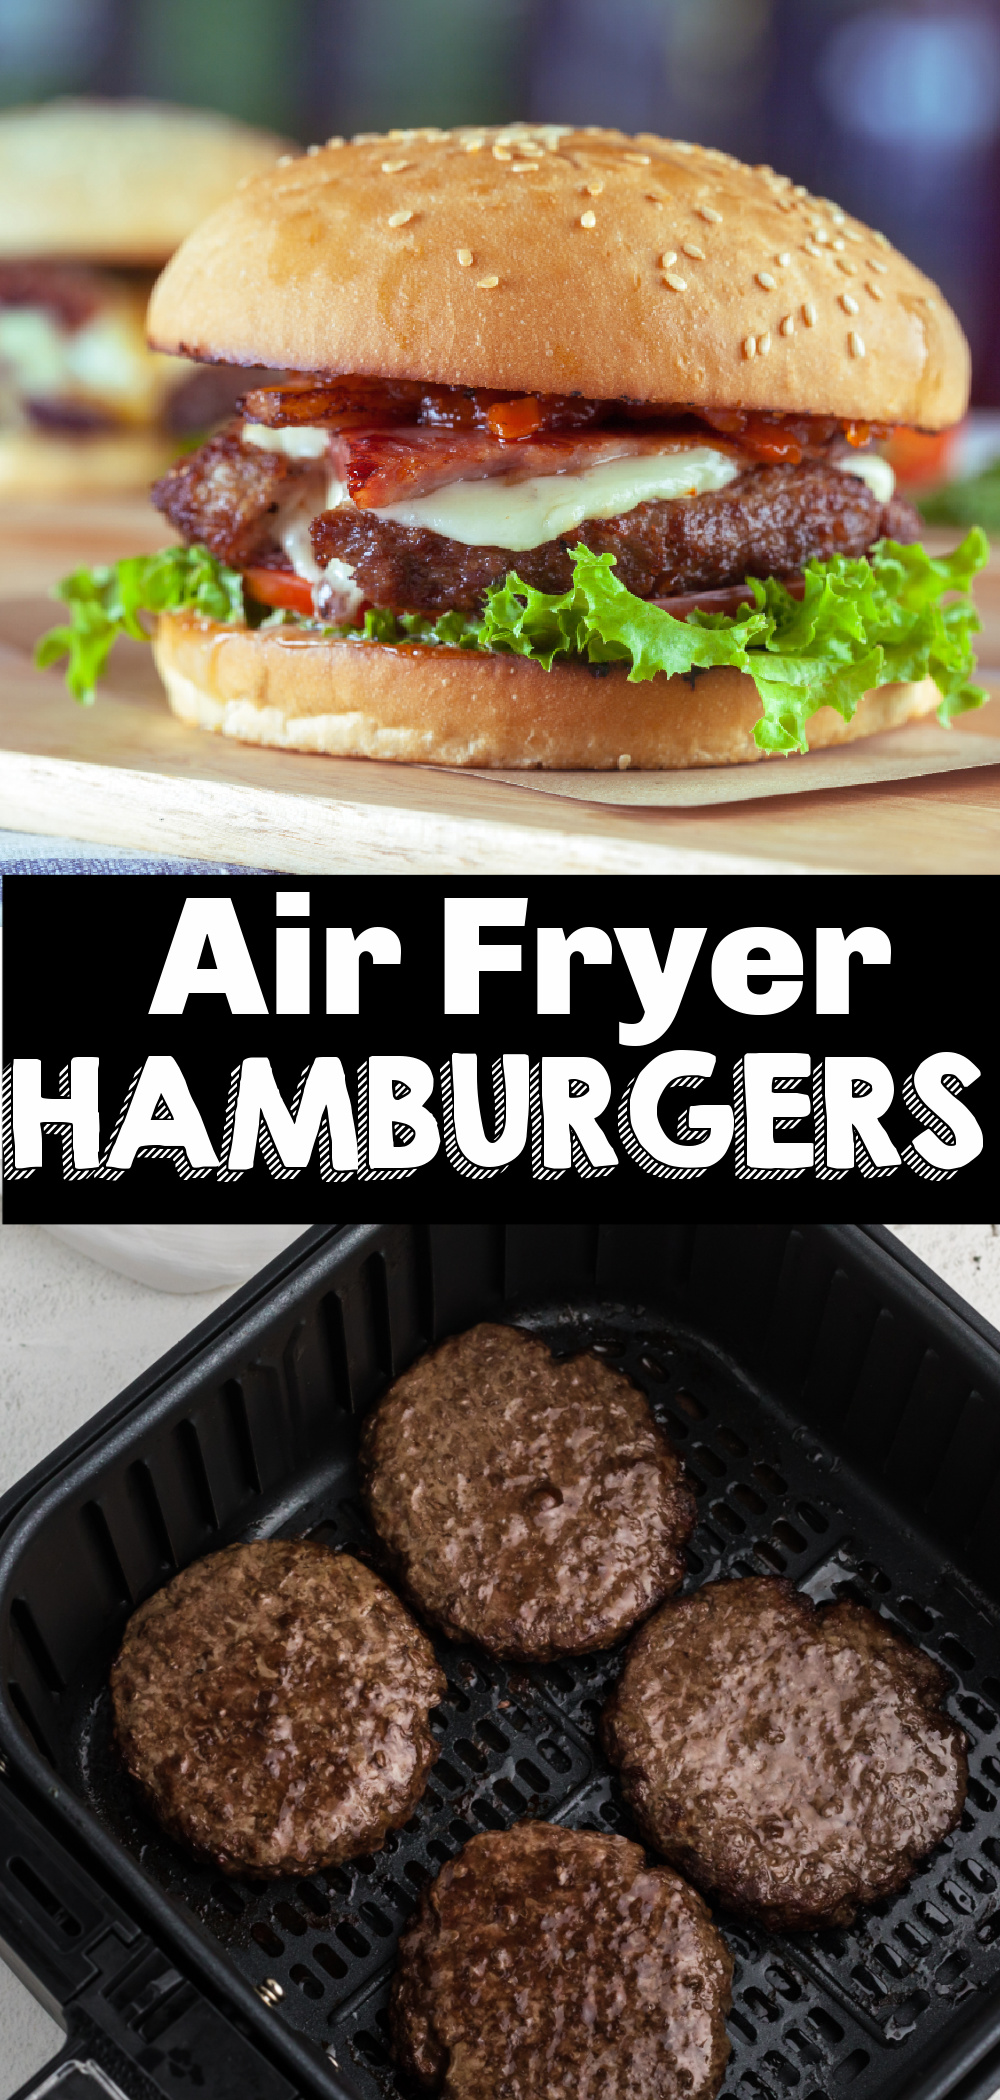 Air Fryer burgers are one of my favorite quick and easy ways to make lunch or dinner. You'll have the best hamburgers done from start to finish before you would even have time to light your grill! Learn how to make fresh hamburgers, frozen hamburgers, and turkey burgers with this easy Air Fryer Hamburger recipe.